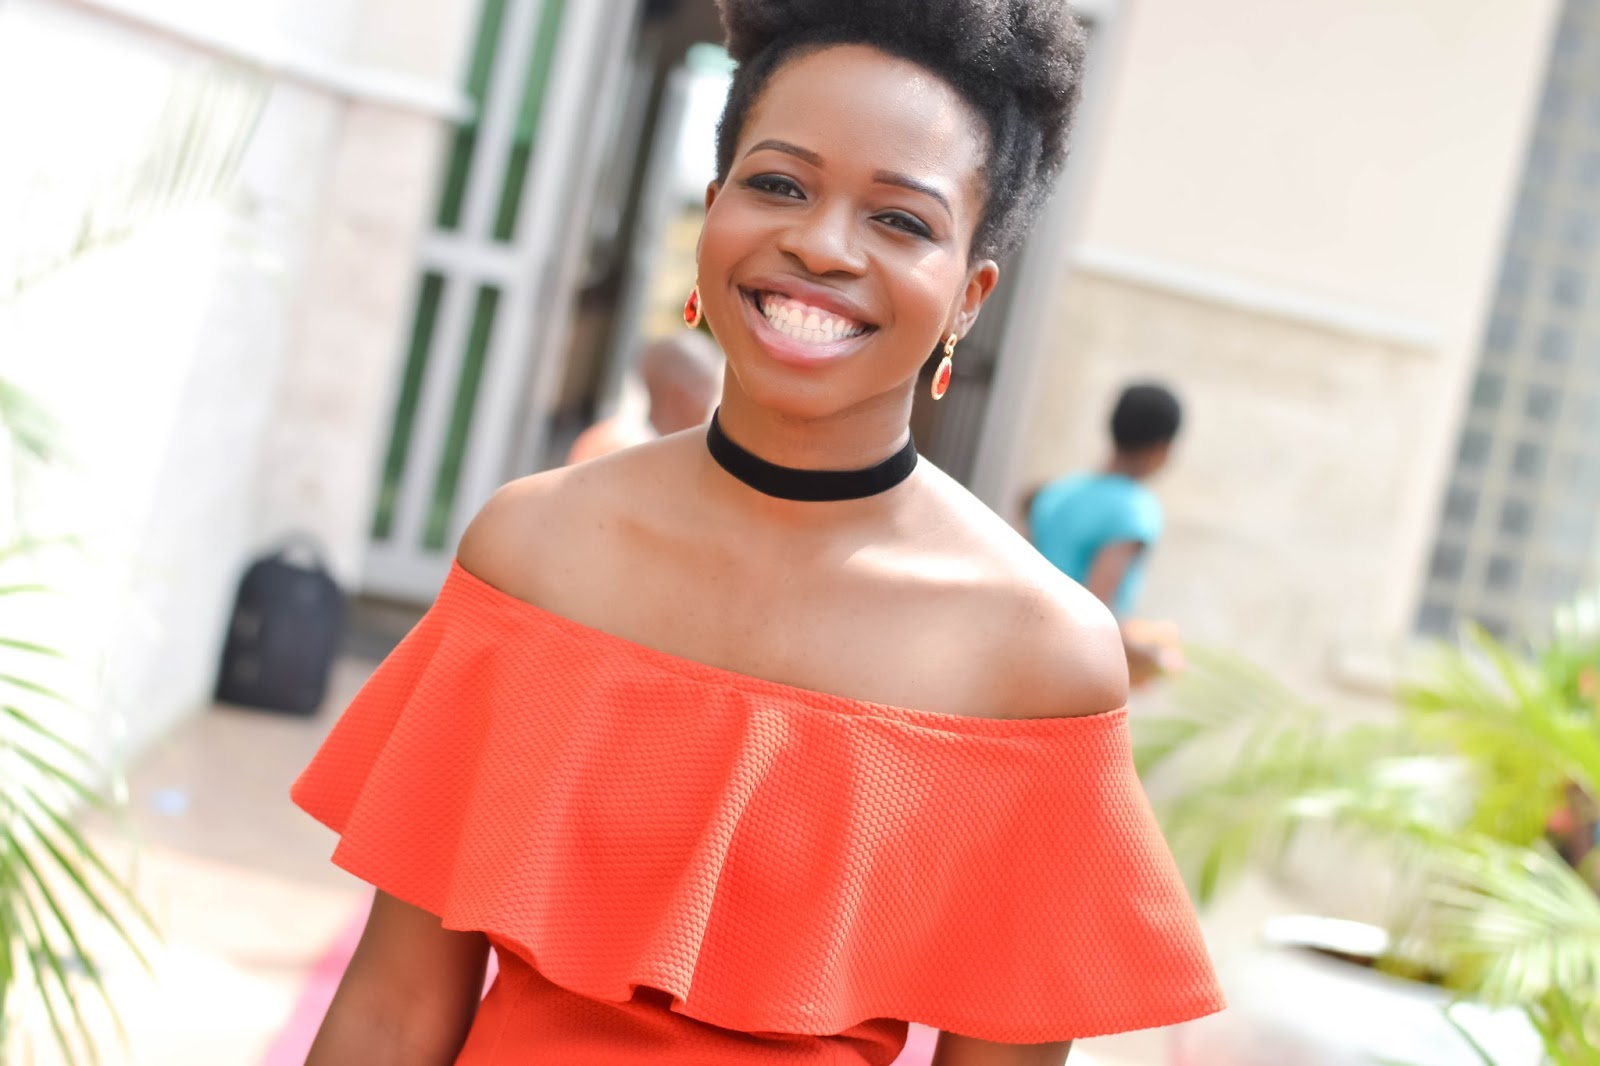 Natural Hair on a Happy Fashion Influencer